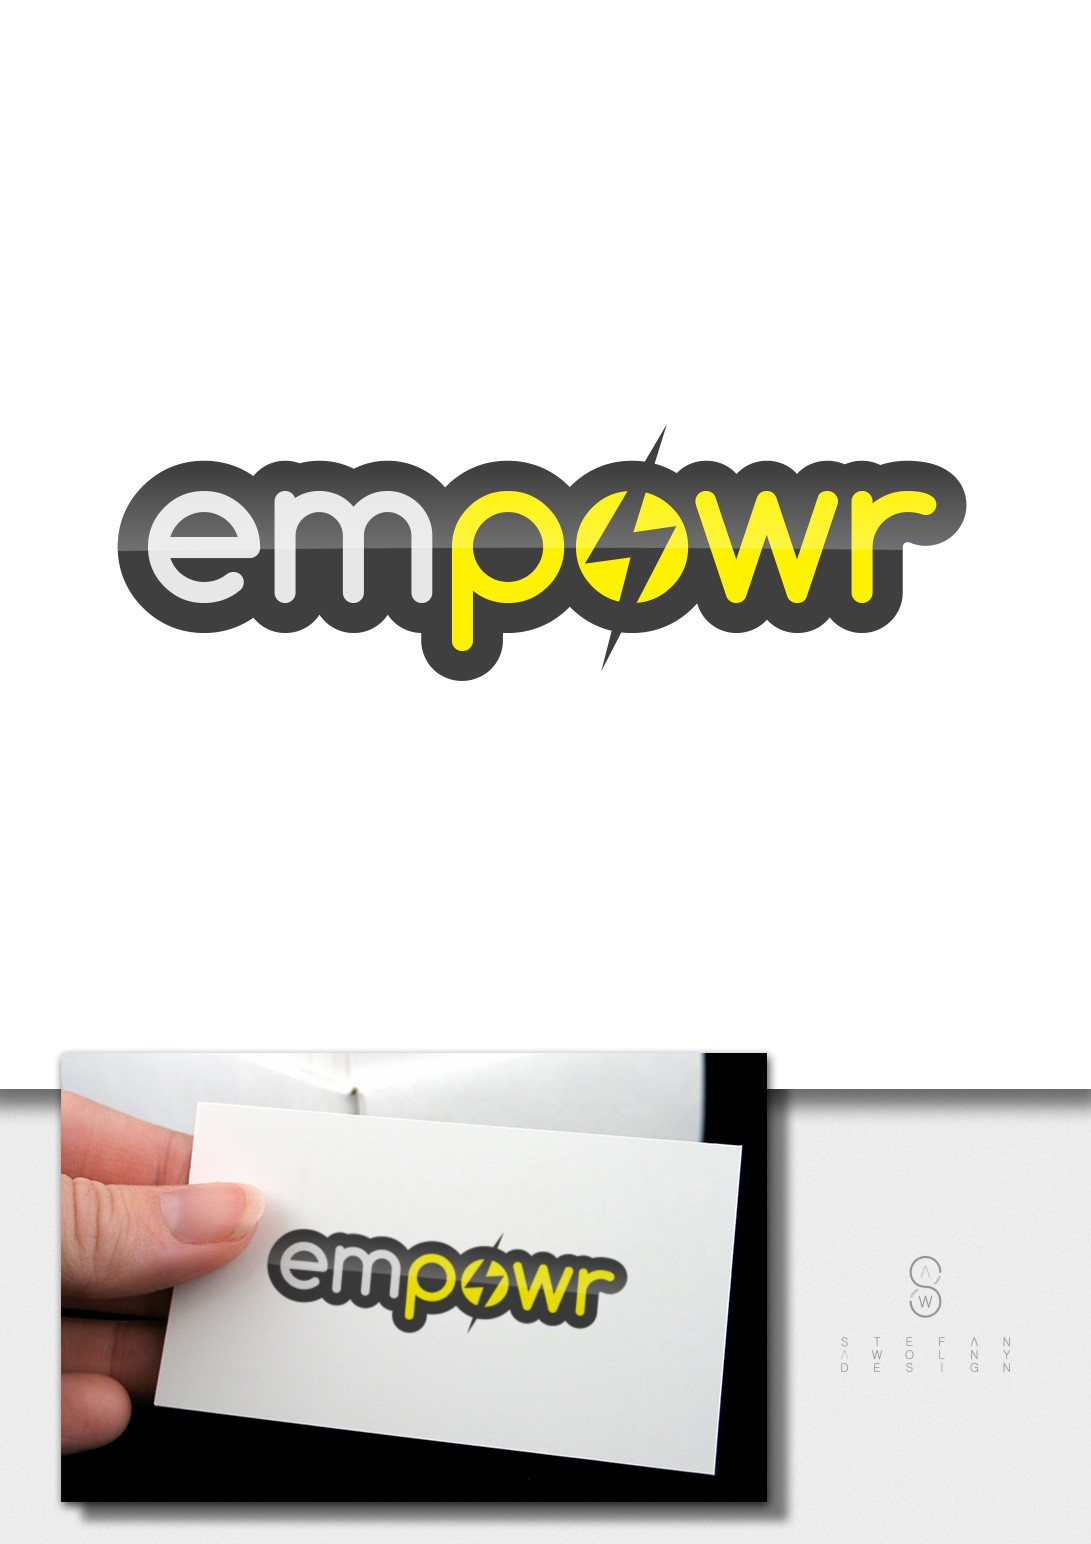 Help EMPOWR with a new logo